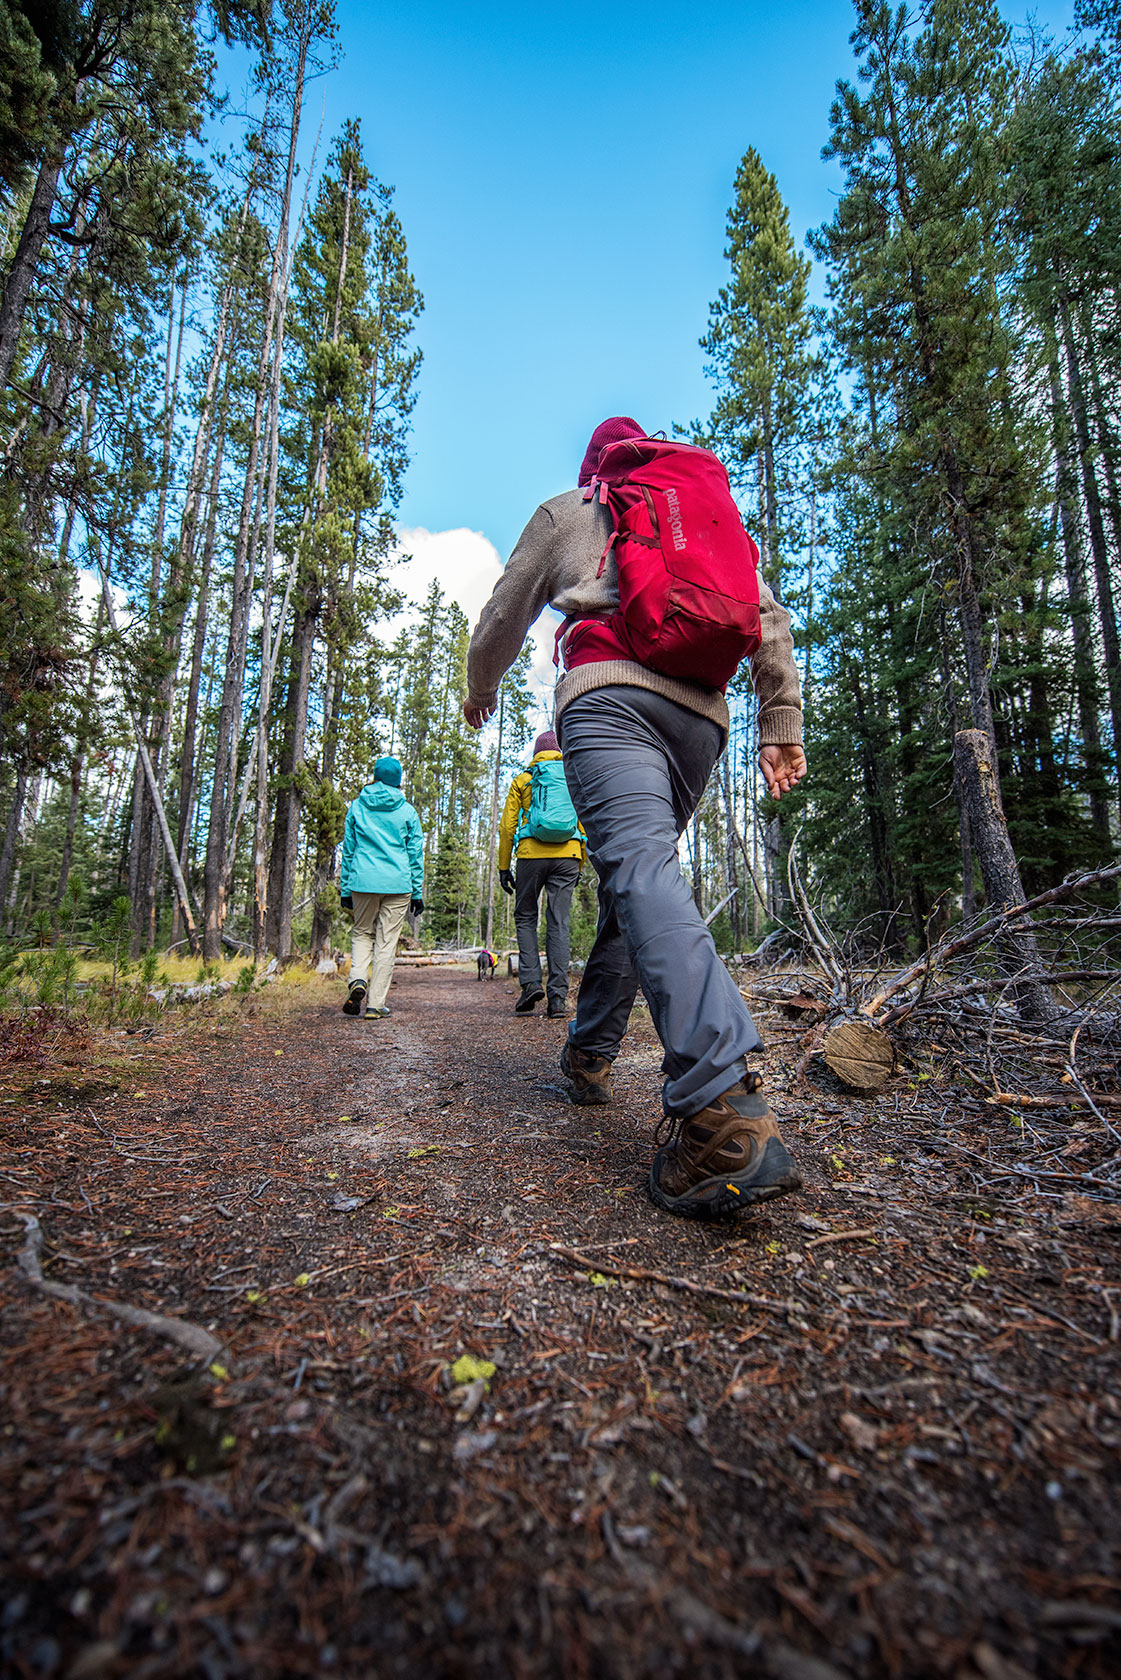 austin-trigg-patagonia-sawtooth-hiking-advenure-wilderness-forest-idaho-outside-lifestyle-day-fall-weather-mountains-backpack-pants.jpg